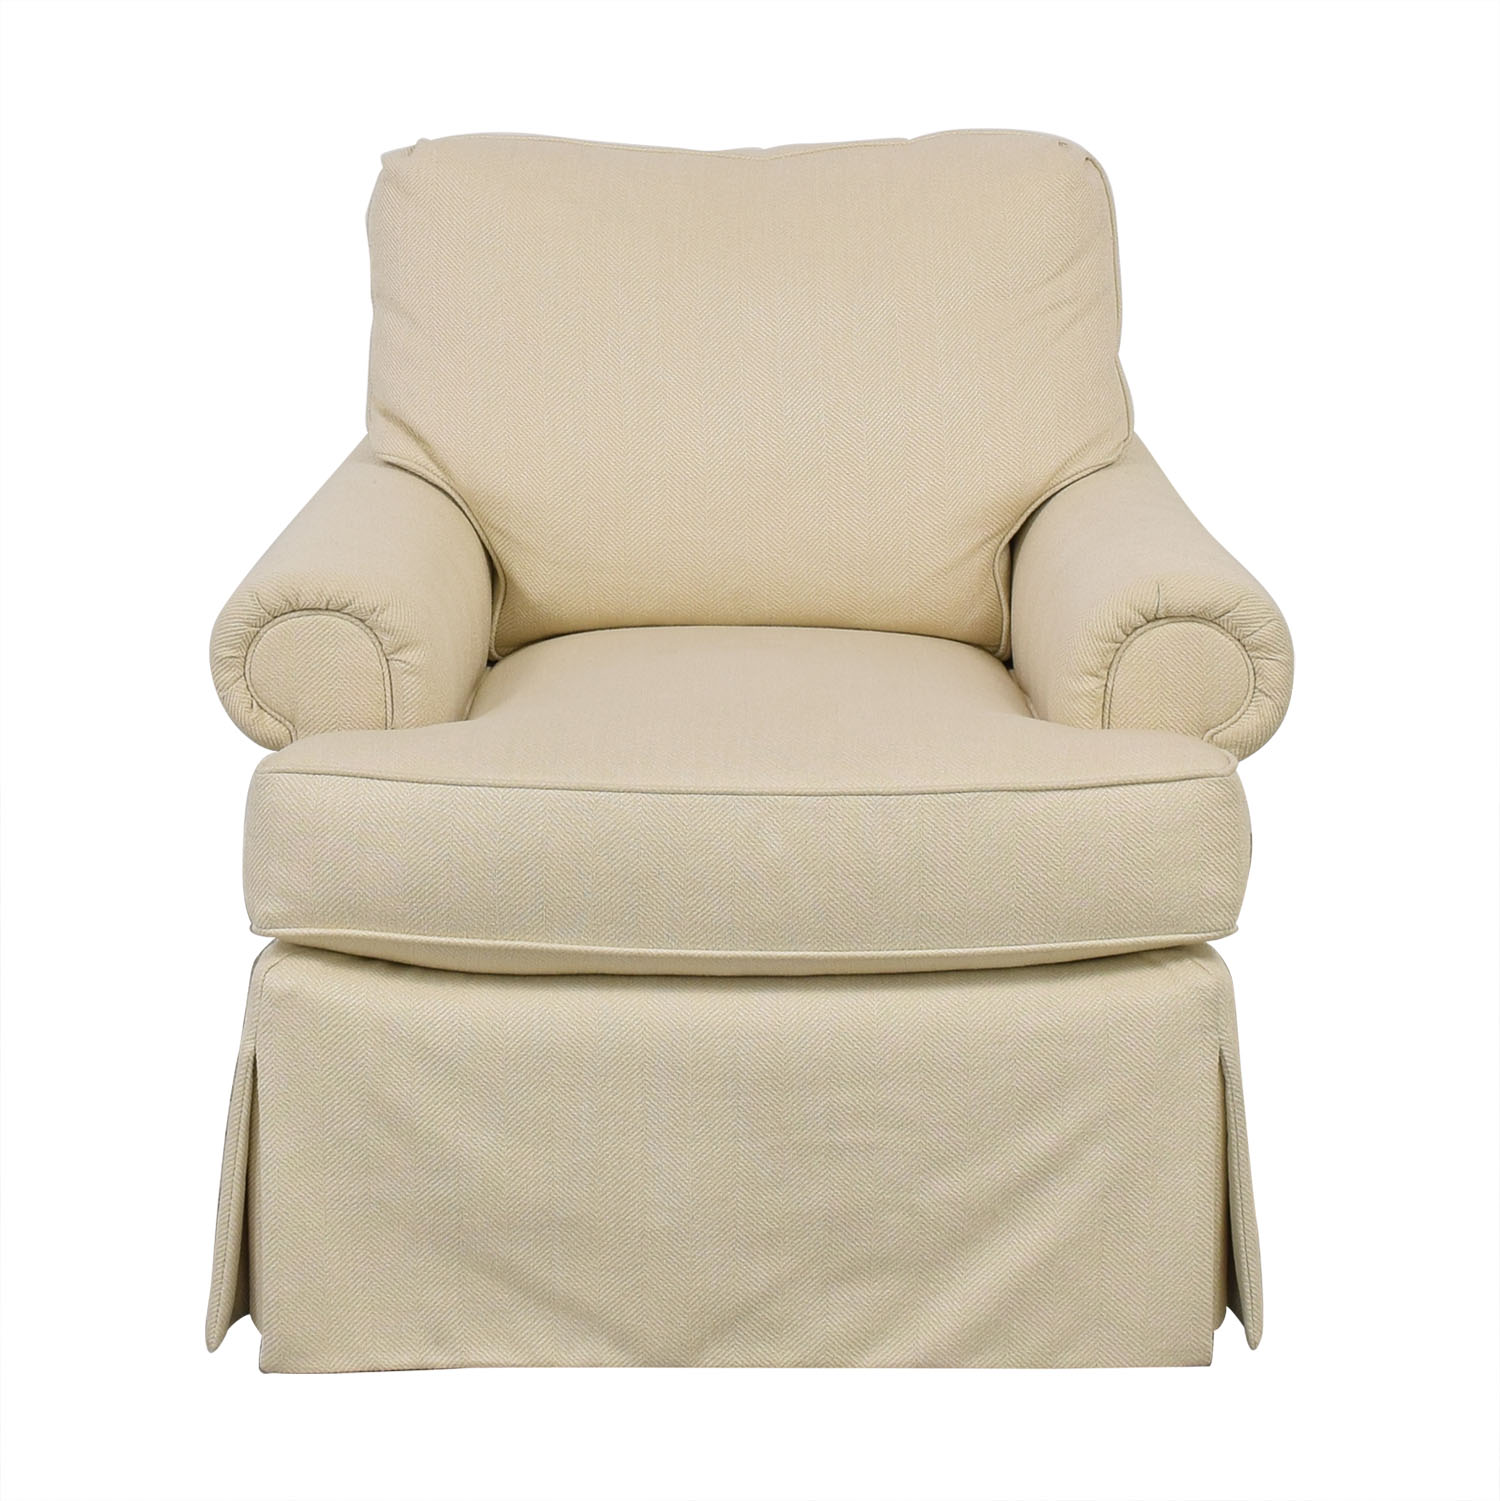 Stanford Furniture Stanford Furniture English Armchair